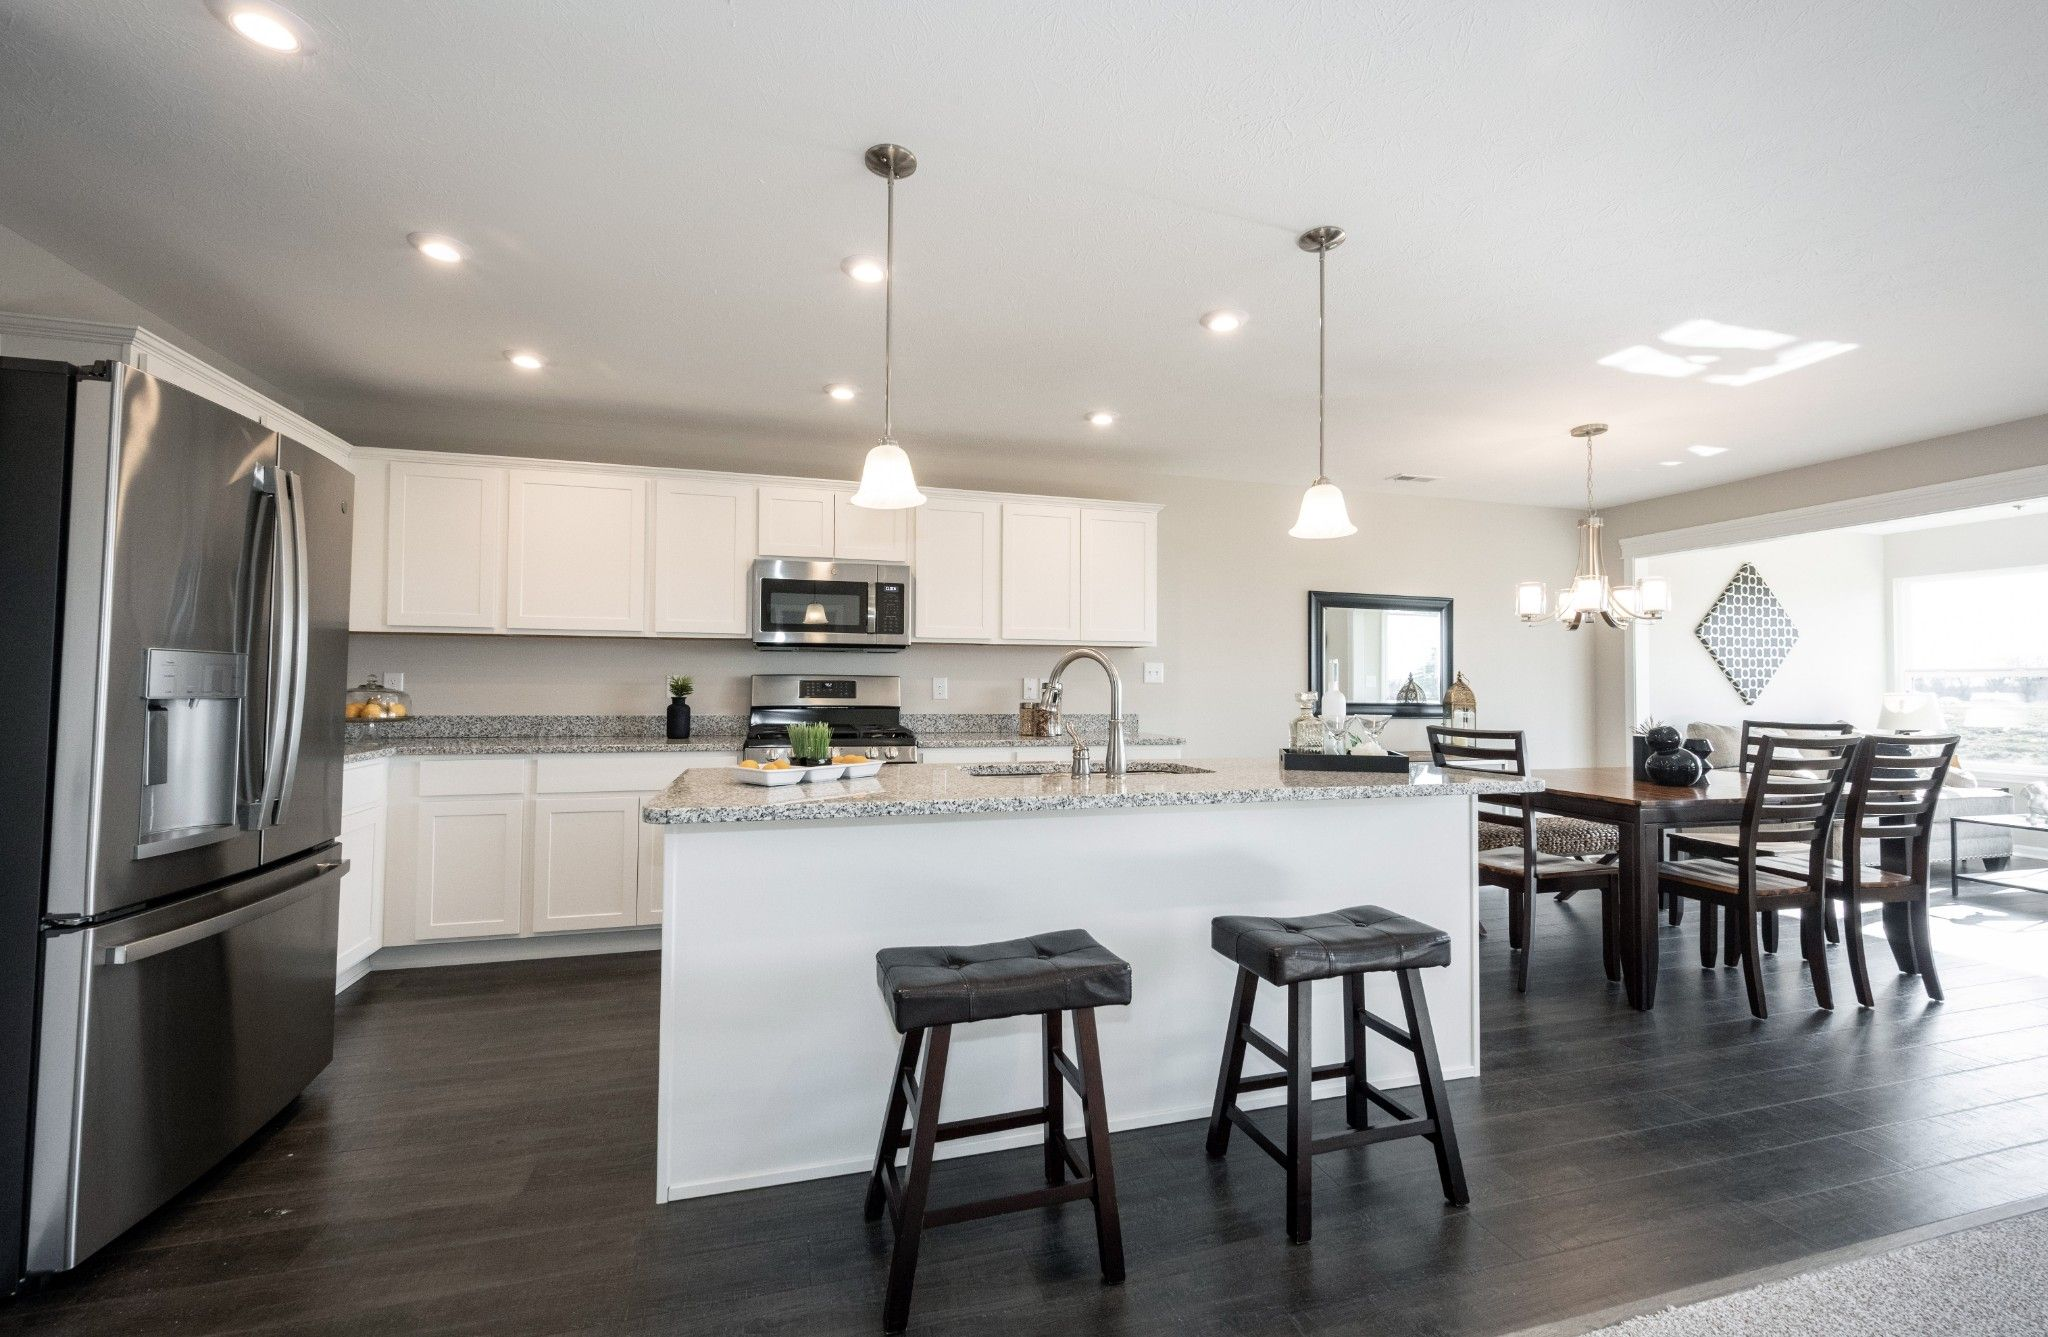 Kitchen featured in the Laine By Olthof Homes in Indianapolis, IN